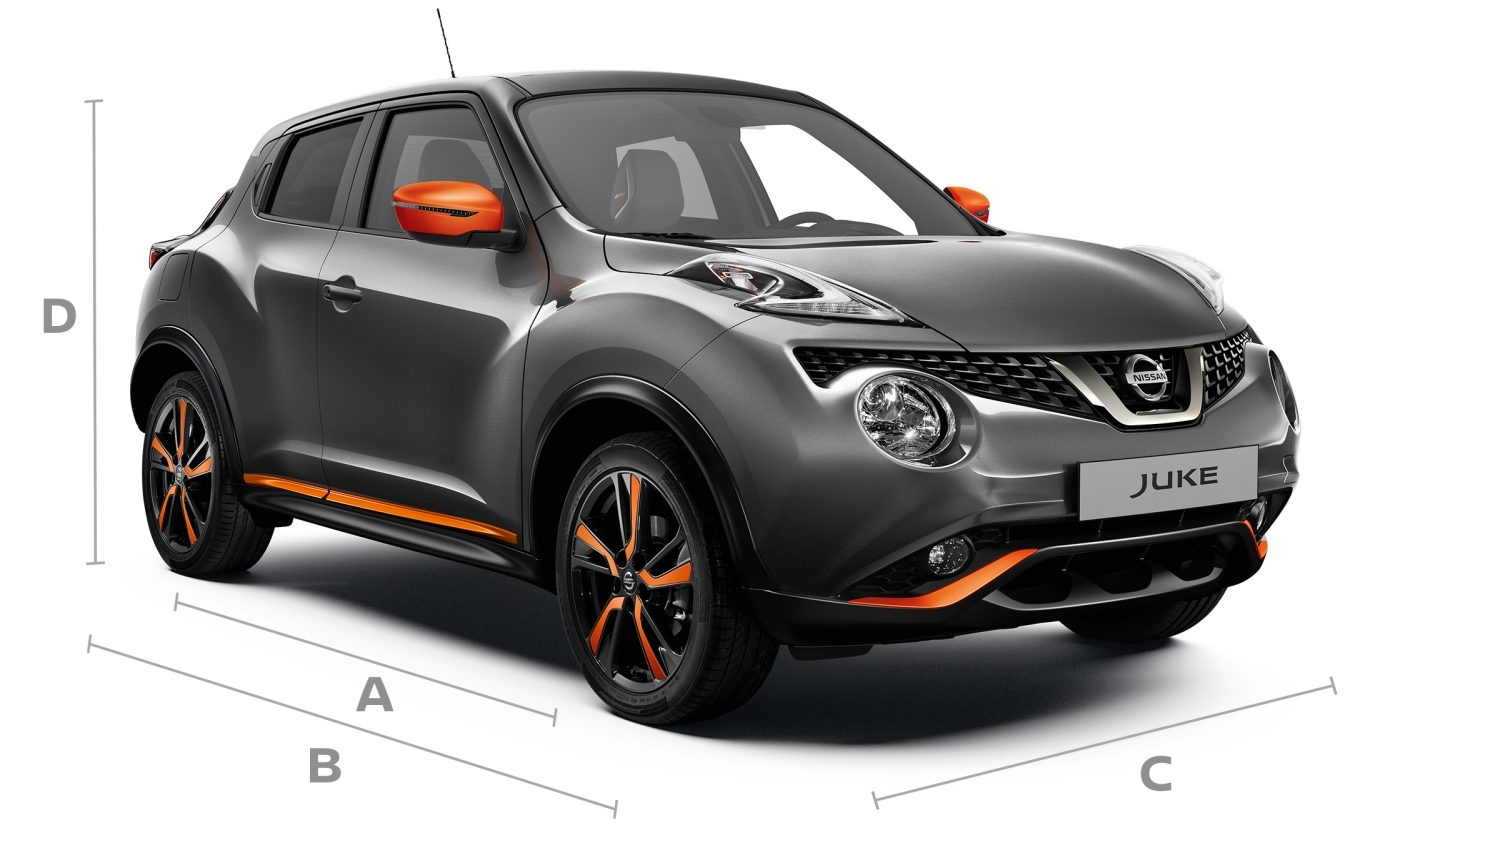 2018 Nissan JUKE 3/4 front shot with dimensions